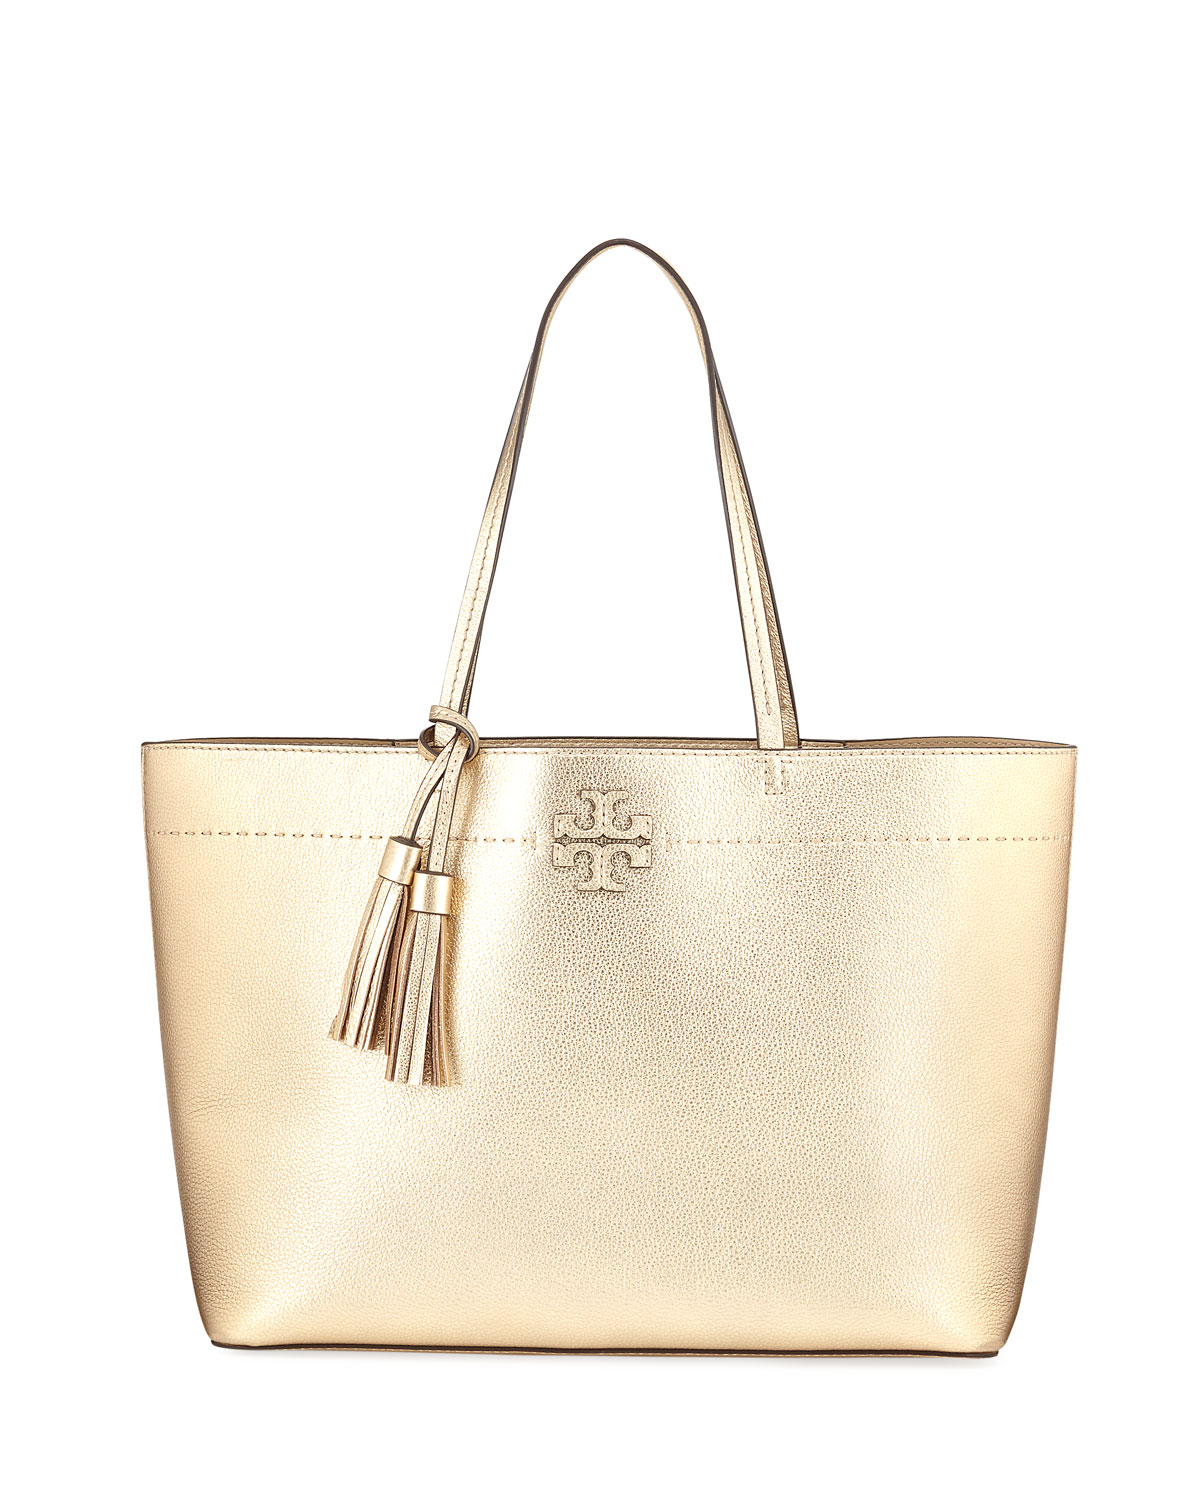 5a57cfdbaf Tory Burch McGraw Metallic Leather Tote Bag, Gold | Neiman Marcus